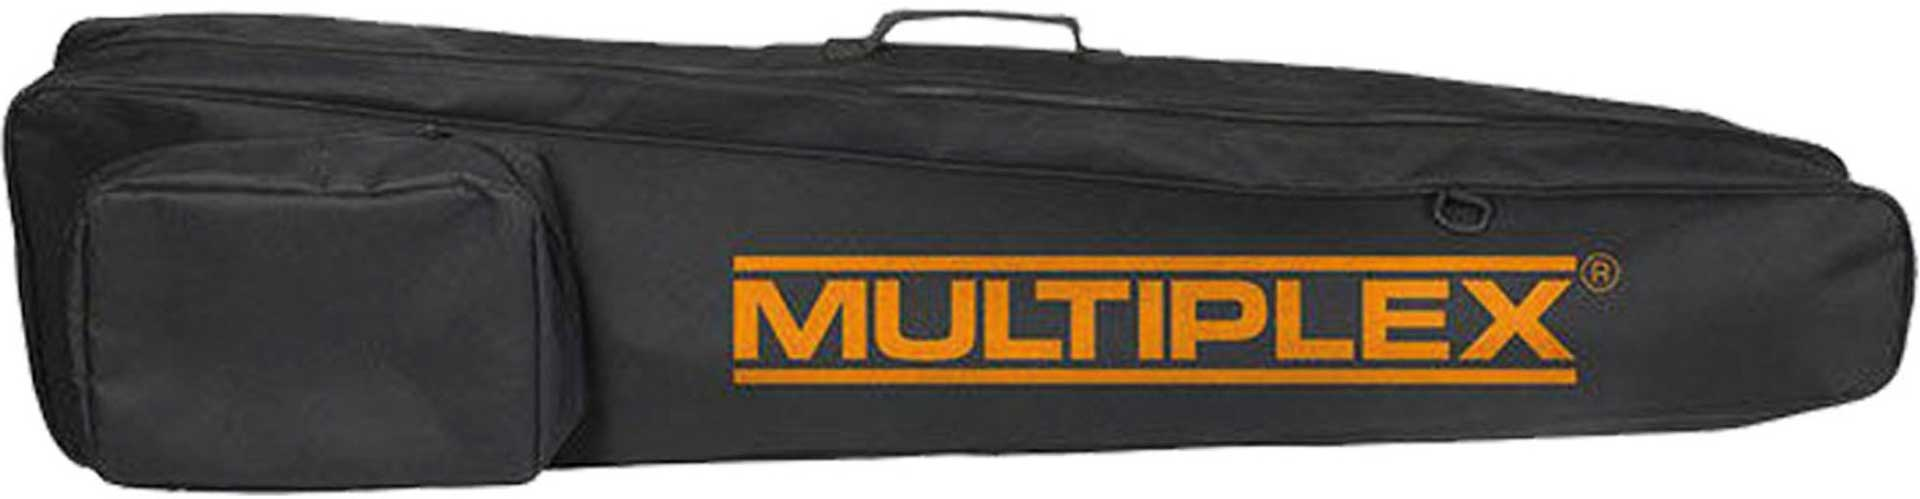 MULTIPLEX MODEL BACKPACK UNIVERSAL 1270/150/270MM MODEL BAG FOR GLIDER BIS APPROX. 2.5M